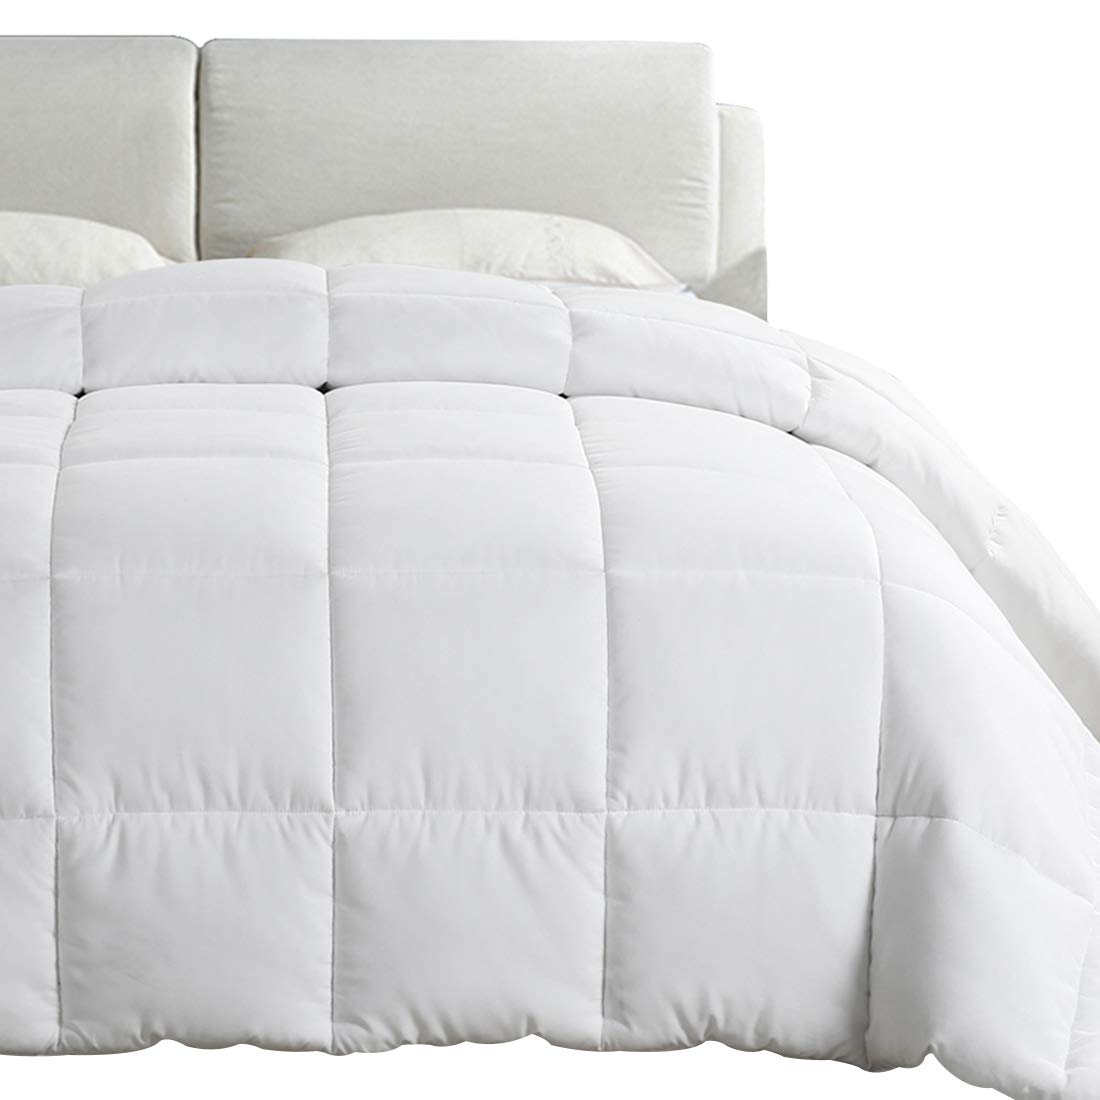 EMONIA Full/Queen Size Comforter for Summer,White Quilted Down Alternative Duvet Insert-Hotel Collection Reversible Hypoallergenic Light and Machine Washable